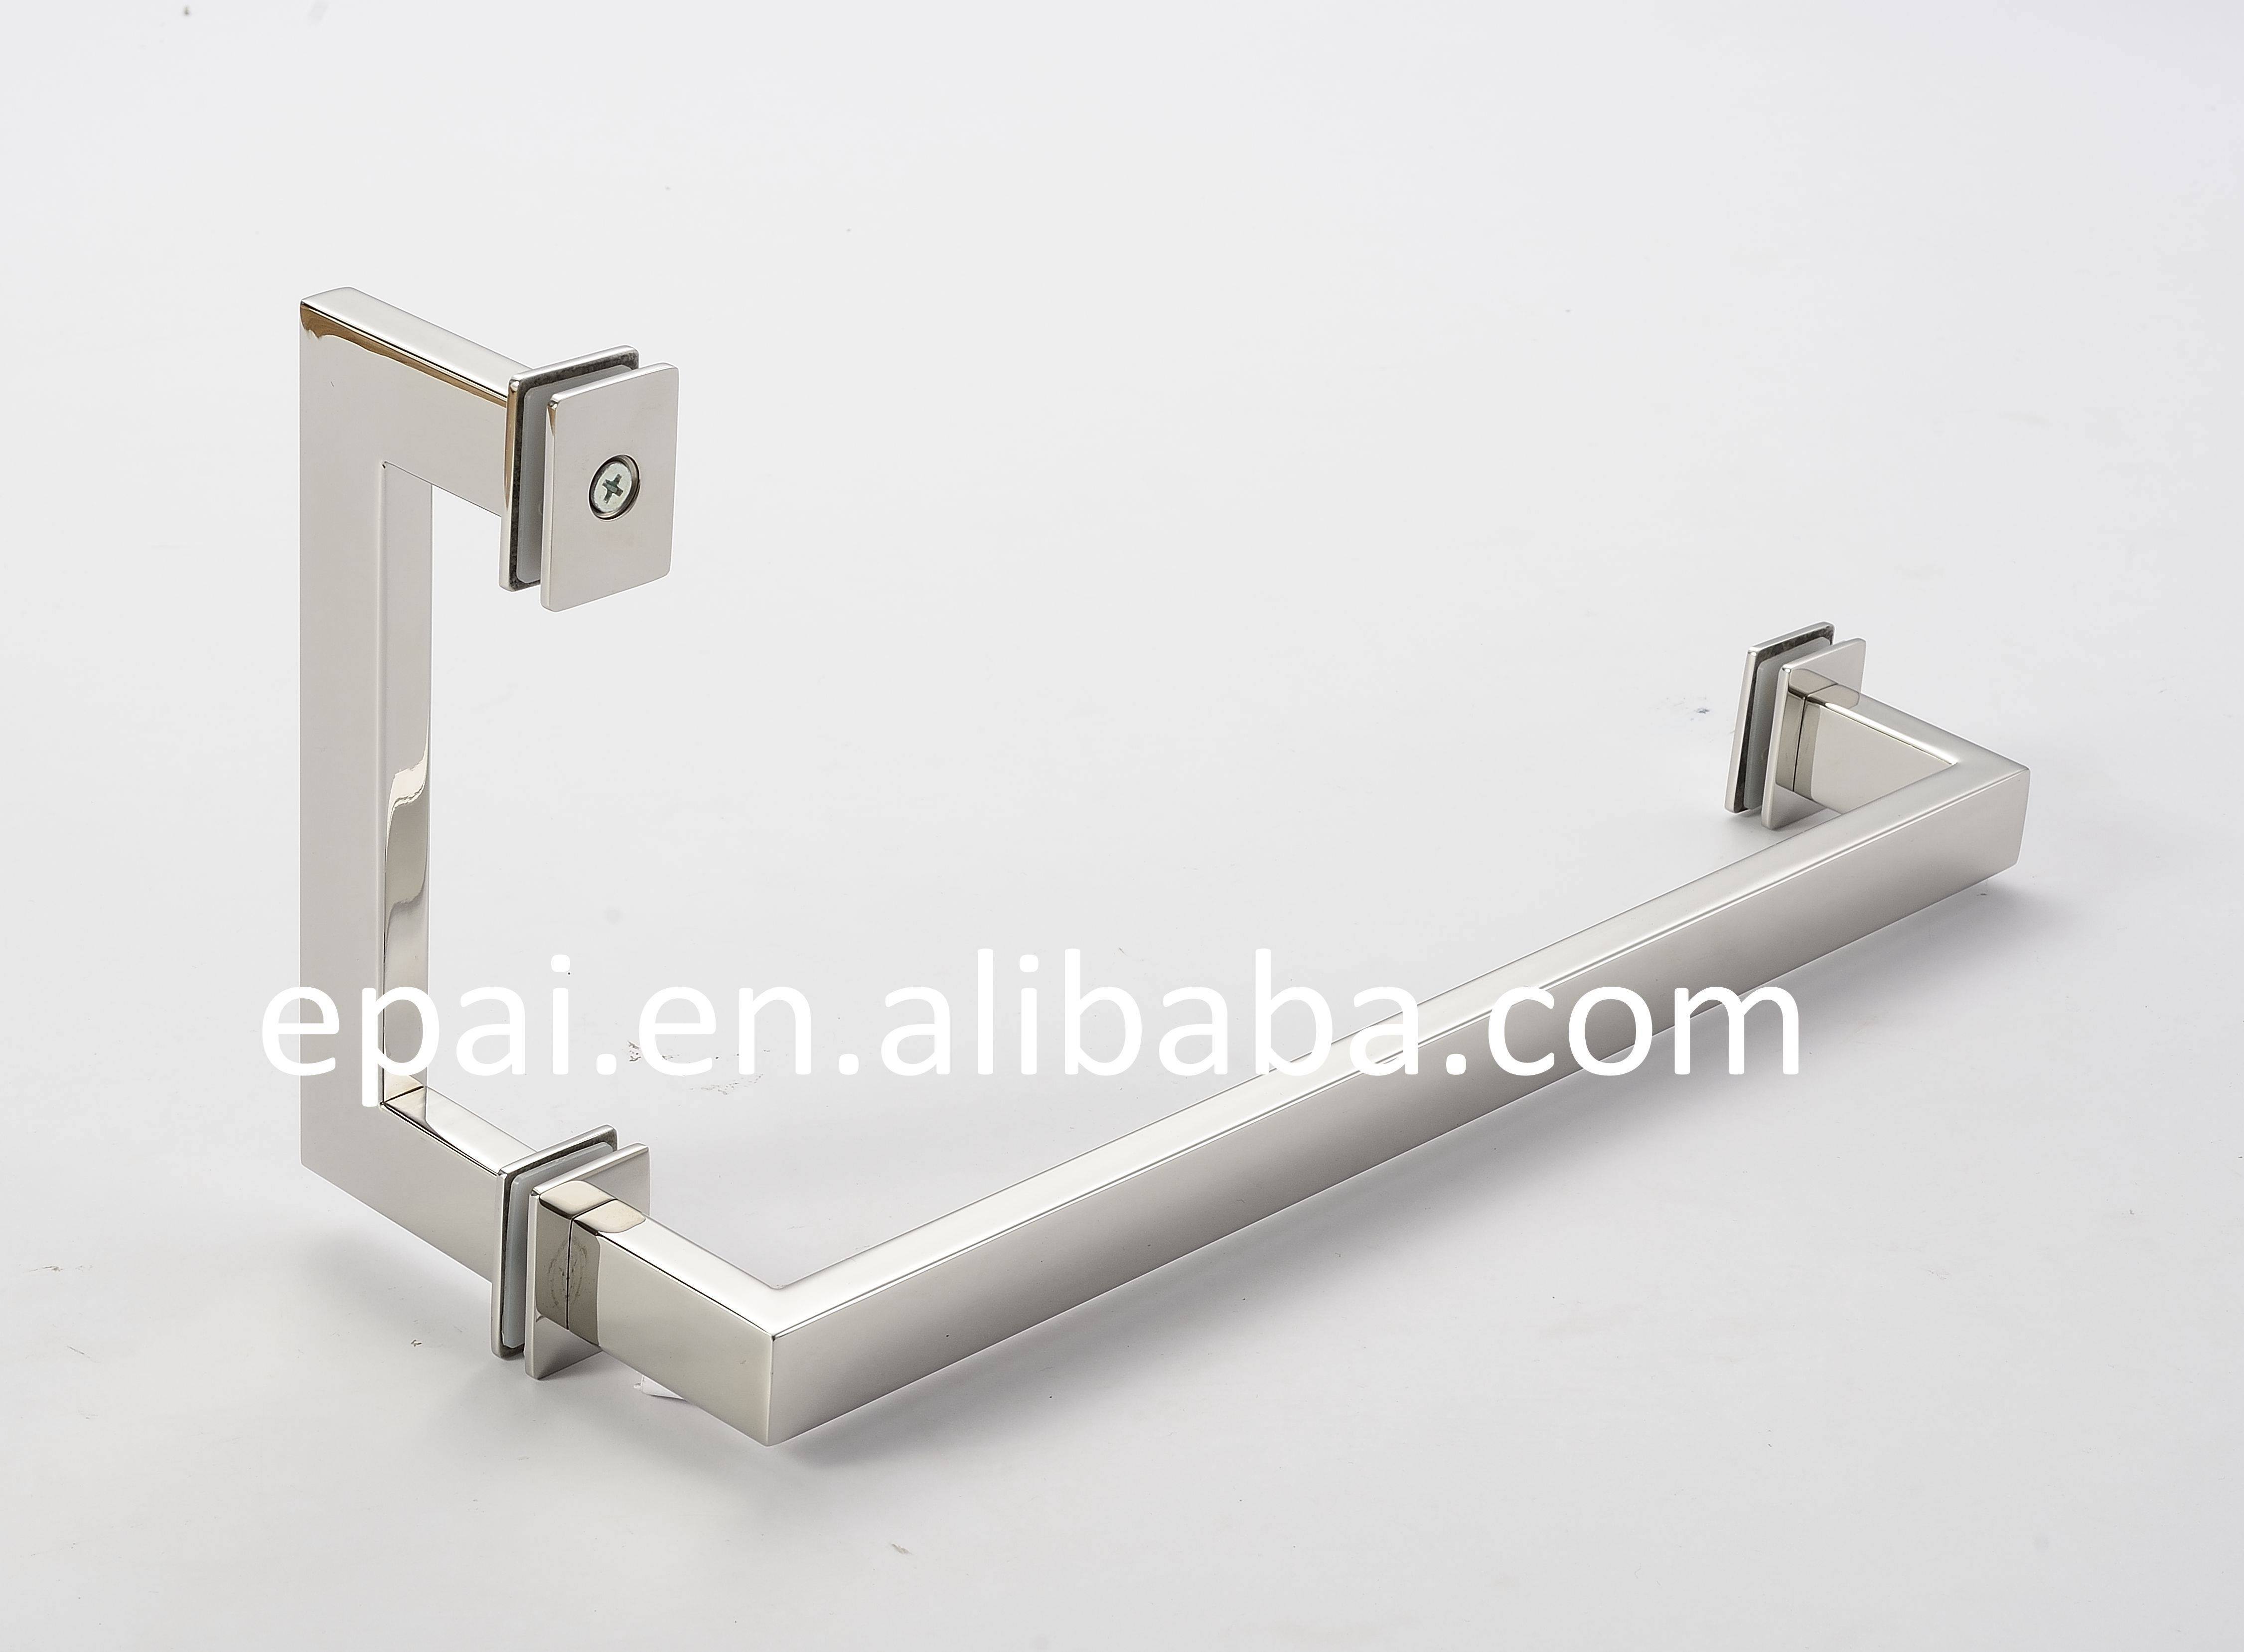 Square tube shower door handle